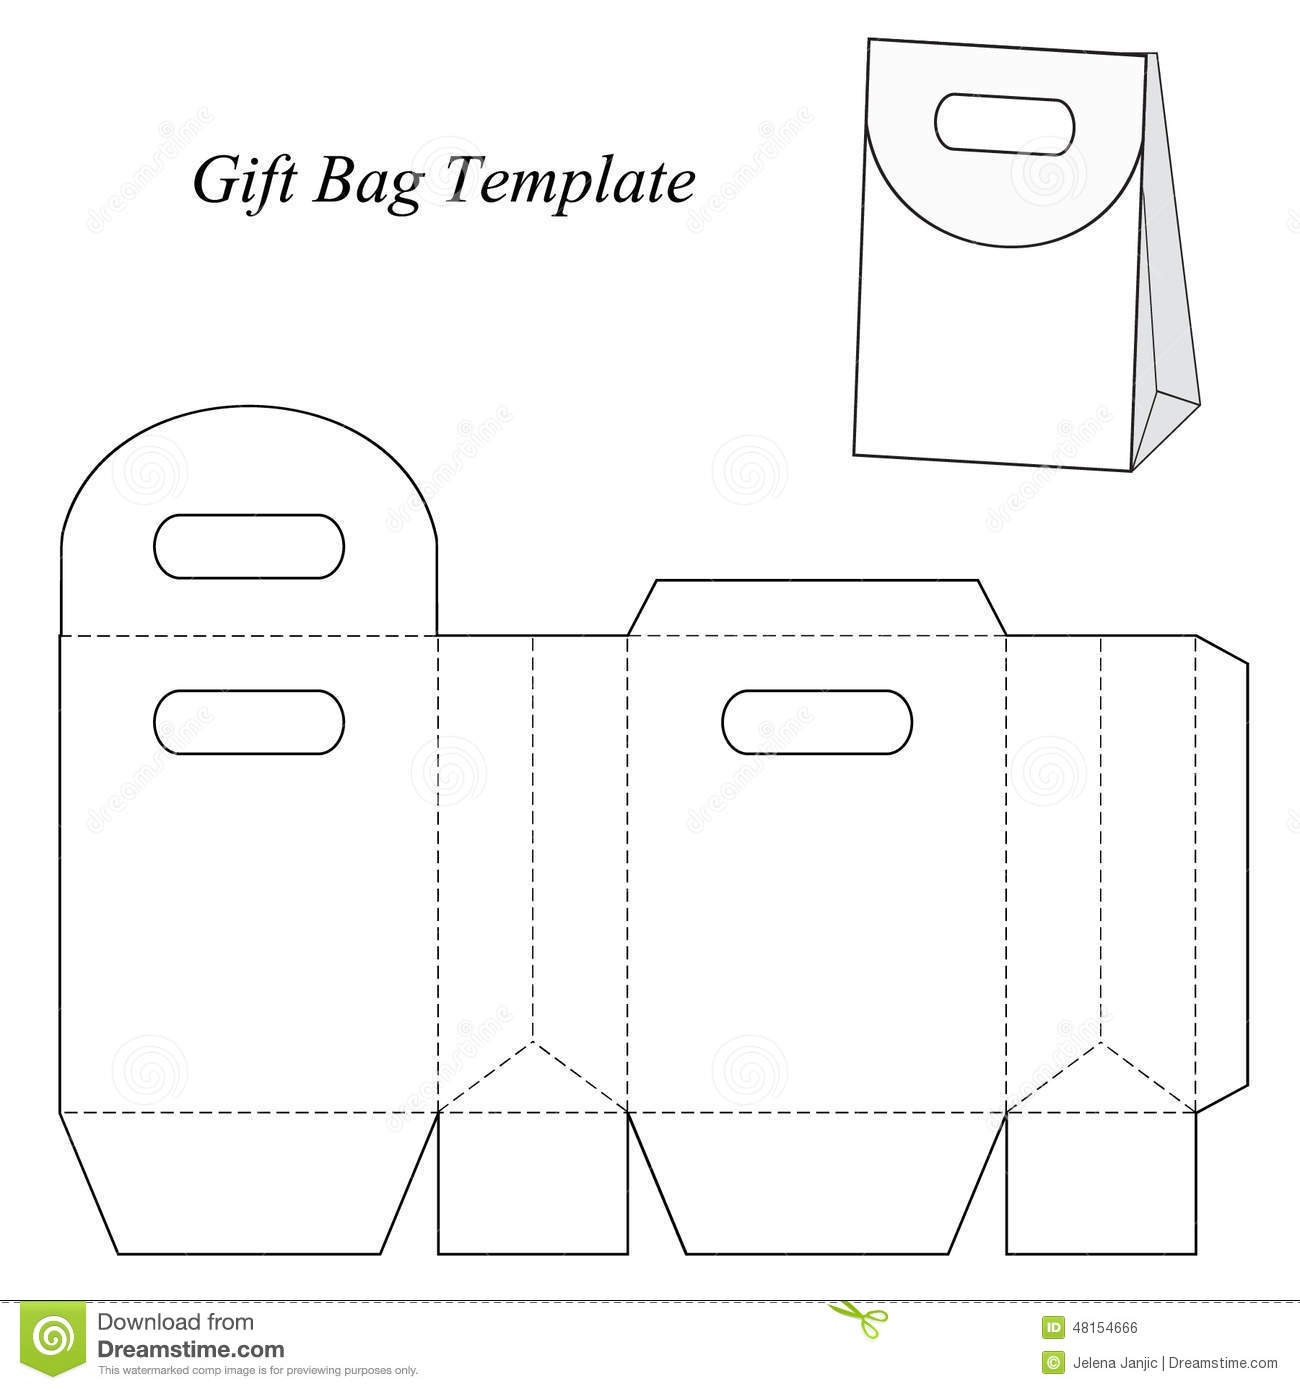 Blank Gift Bag Template With Round Lid